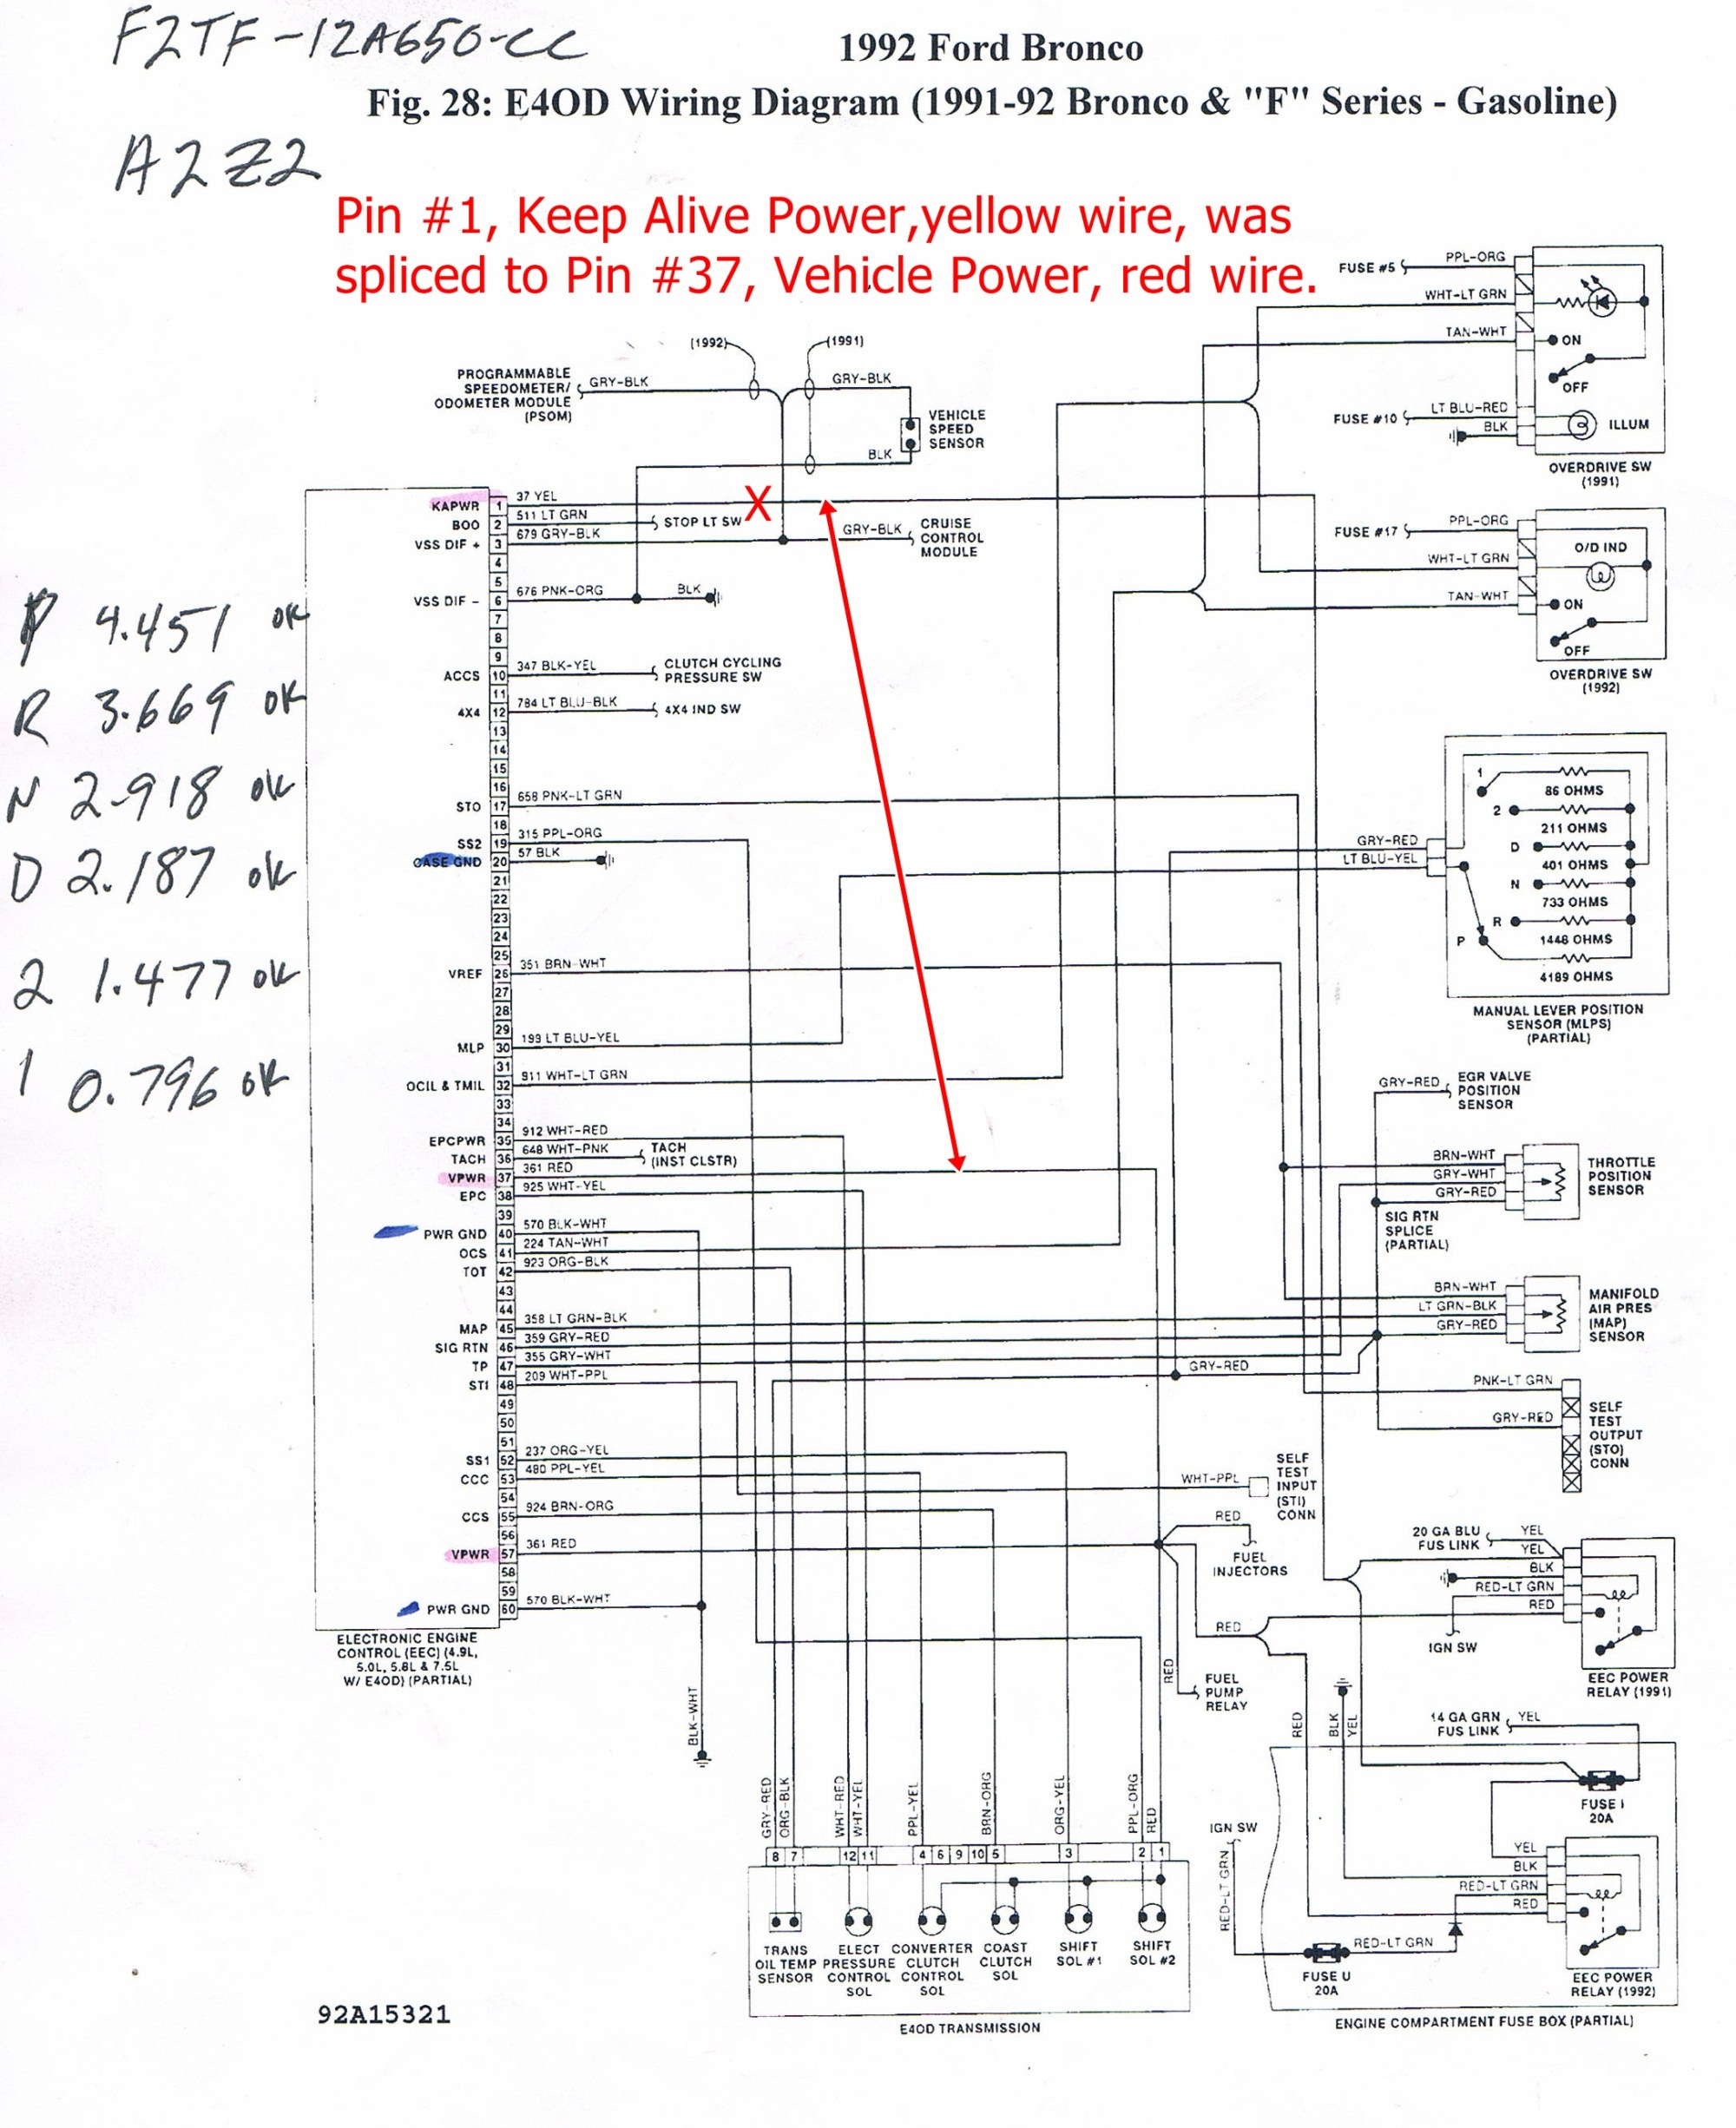 hight resolution of 1994 4l60e transmission diagram breakdown wiring diagram gpwrg 3497 wiring diagram 4l60e transmission exploded vi